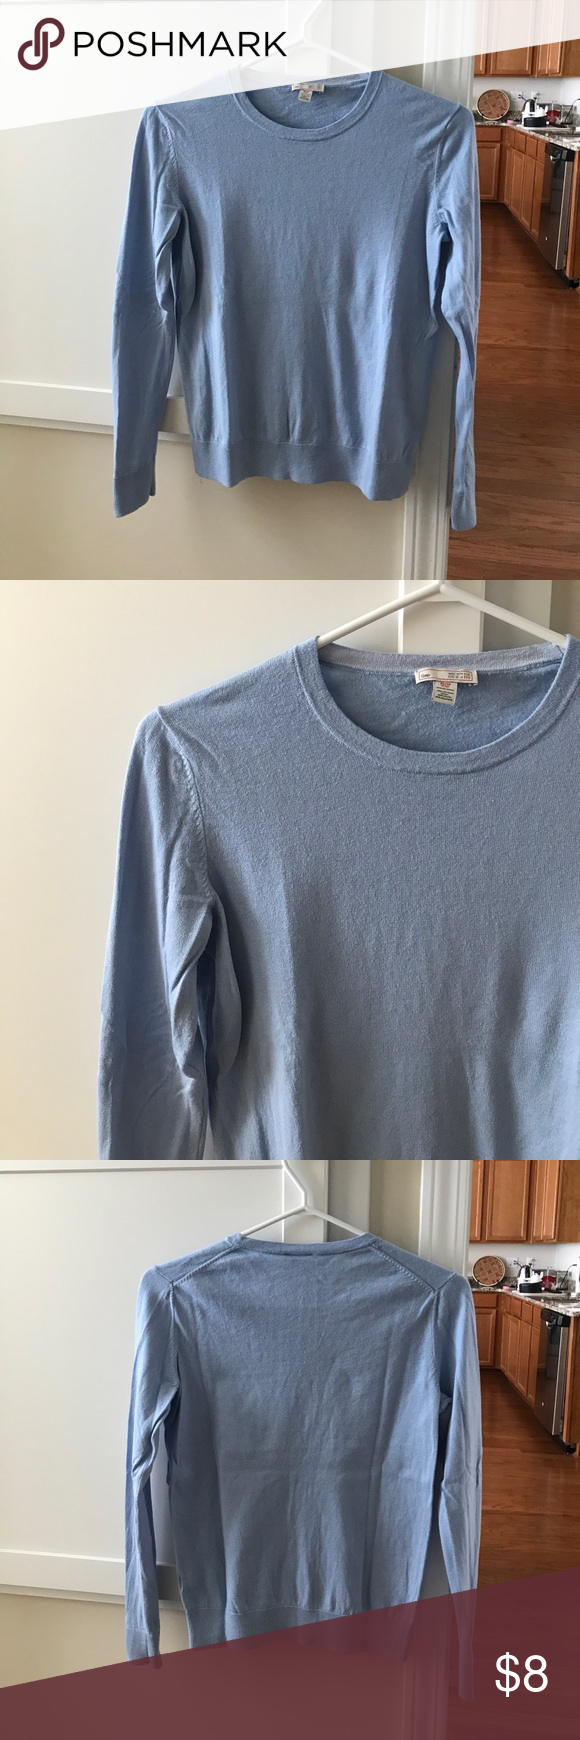 GAP blue sweater, XS GAP blue sweater, XS. 70% cotton/20% nylon/10 ...